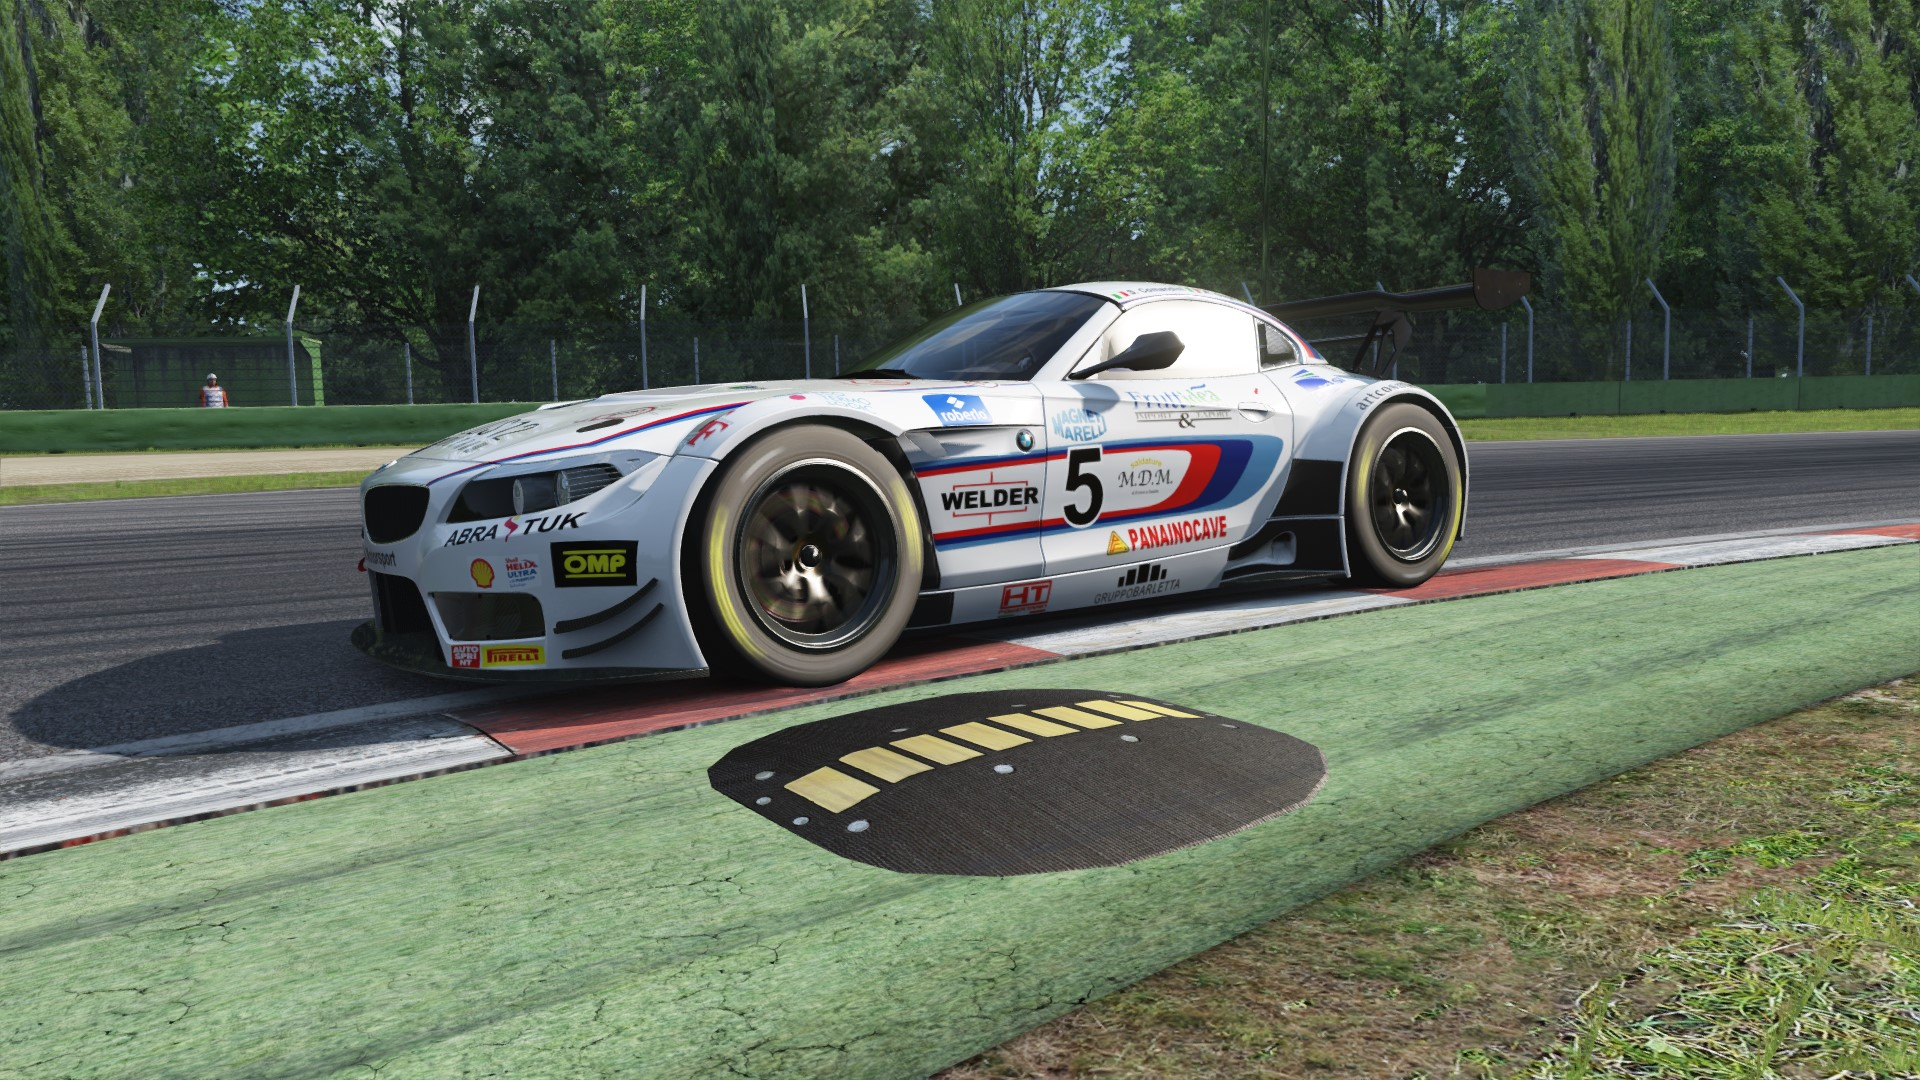 Screenshot_bmw_z4_gt3_imola_26-1-117-15-9-2.jpg